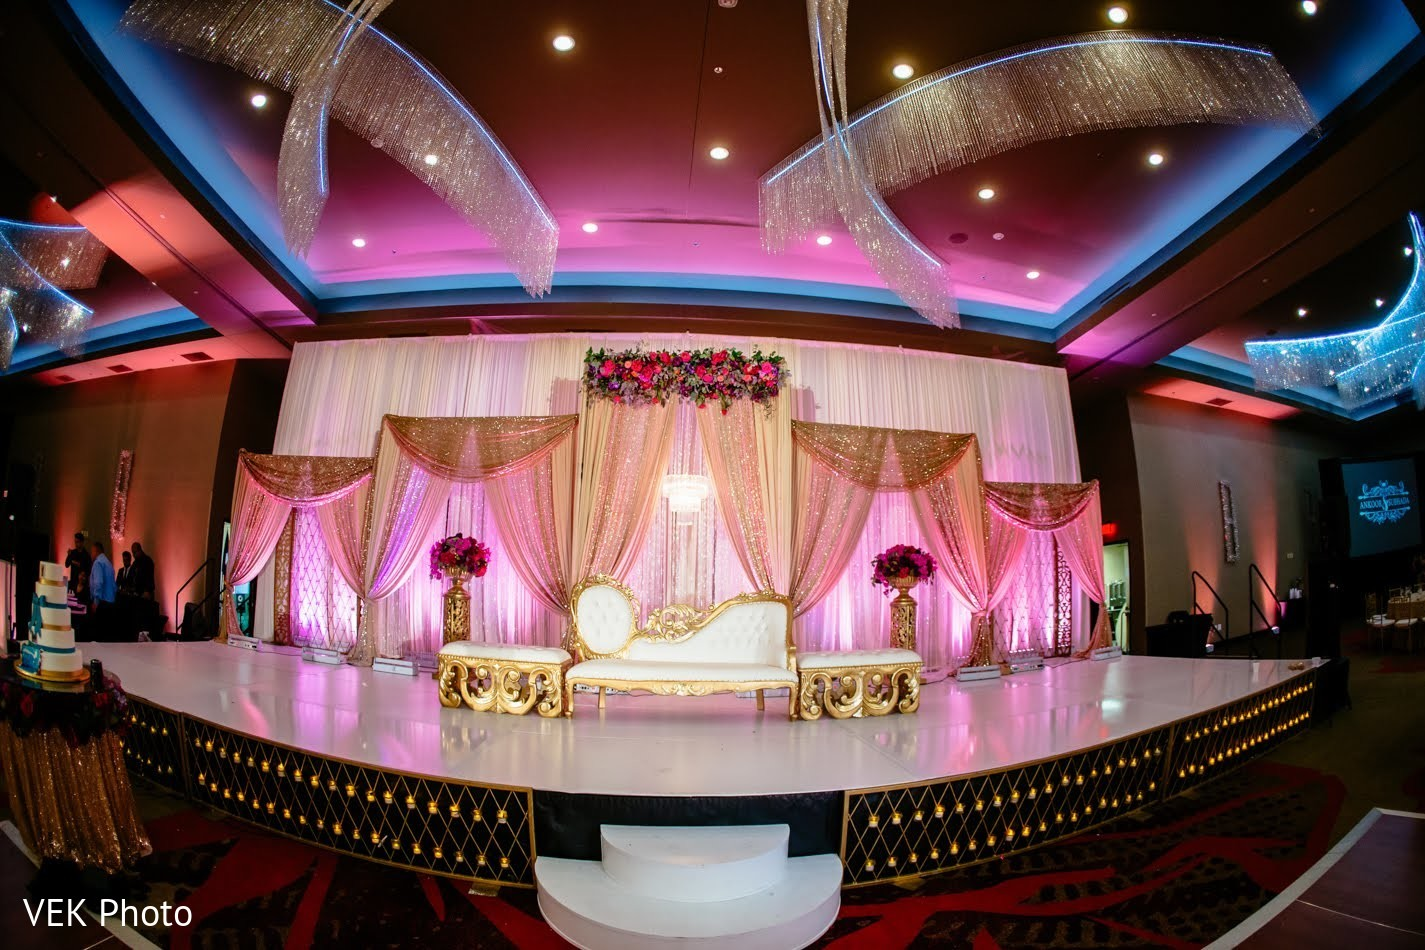 Grapevine Tx South Indian Wedding By Vek Photo Post 12161